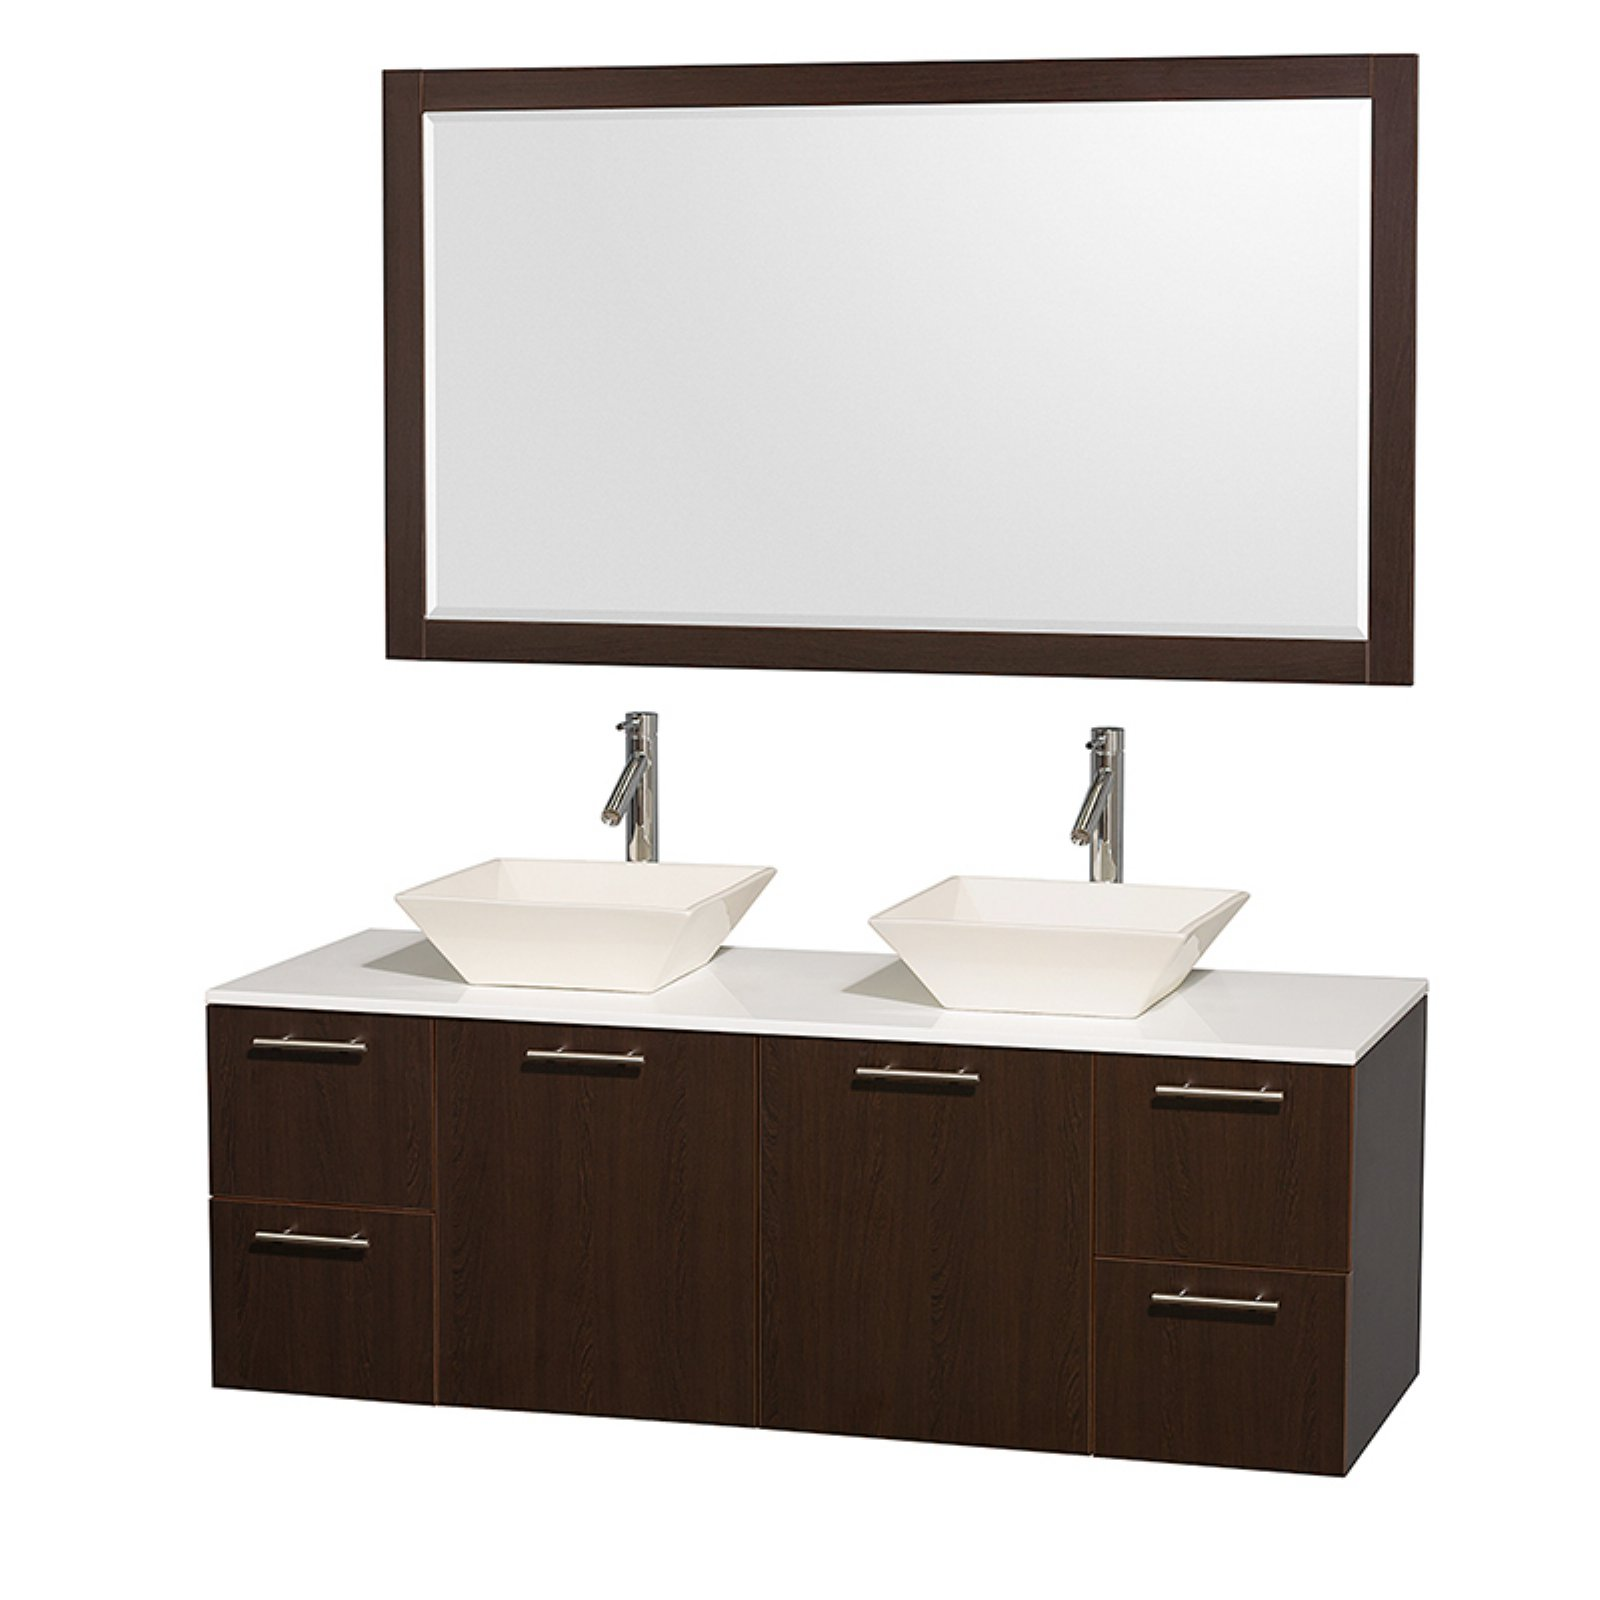 """Wyndham Collection Amare 60"""" Double Bathroom Vanity, Espresso with White Man-Made Stone Top with White Porcelain Sinks and 58"""" Mirror"""